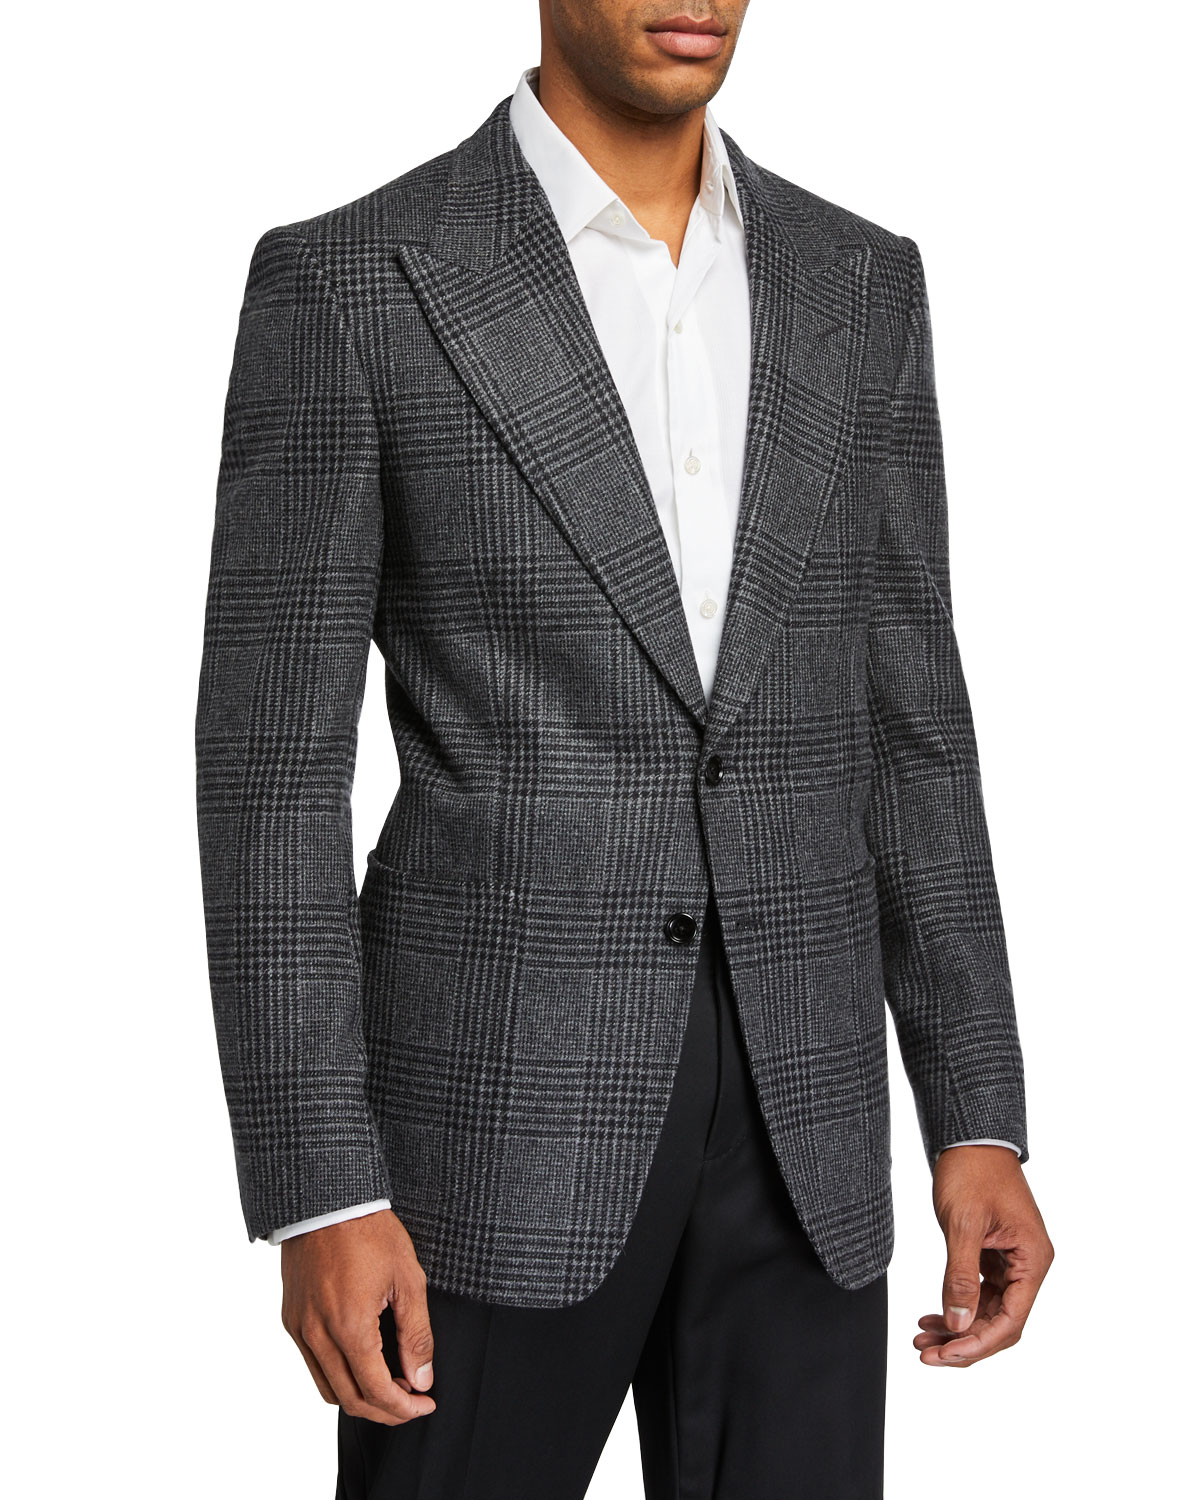 Tom Ford Jackets MEN'S PRINCE OF WALES PLAID SHELTON PEAK TWO-BUTTON JACKET